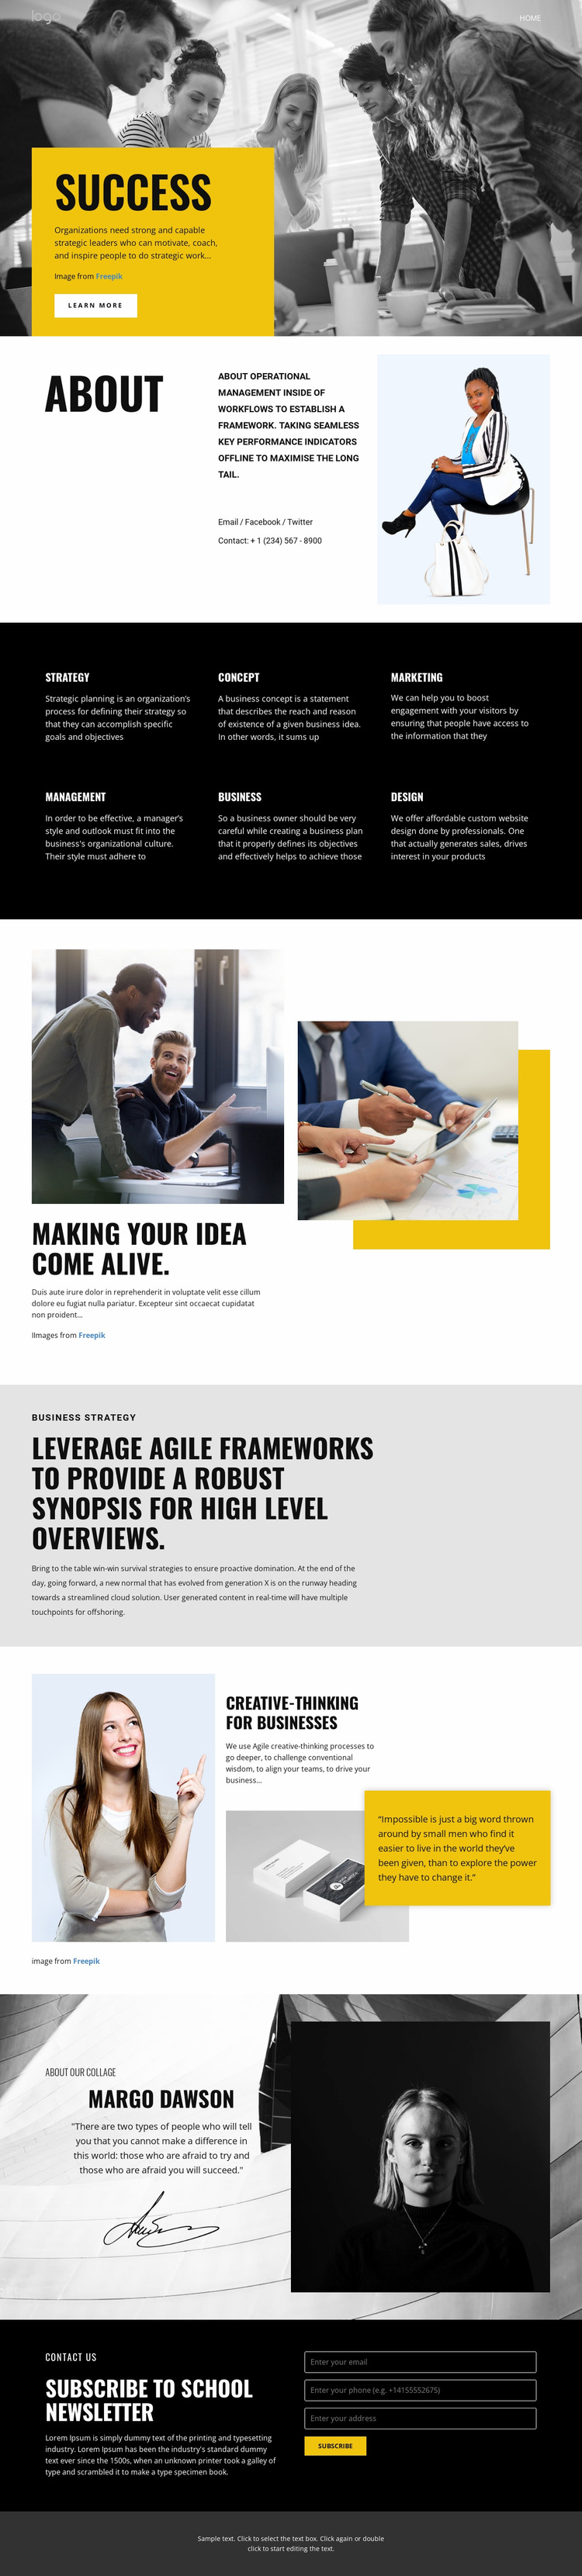 Capable people in businesses Website Design